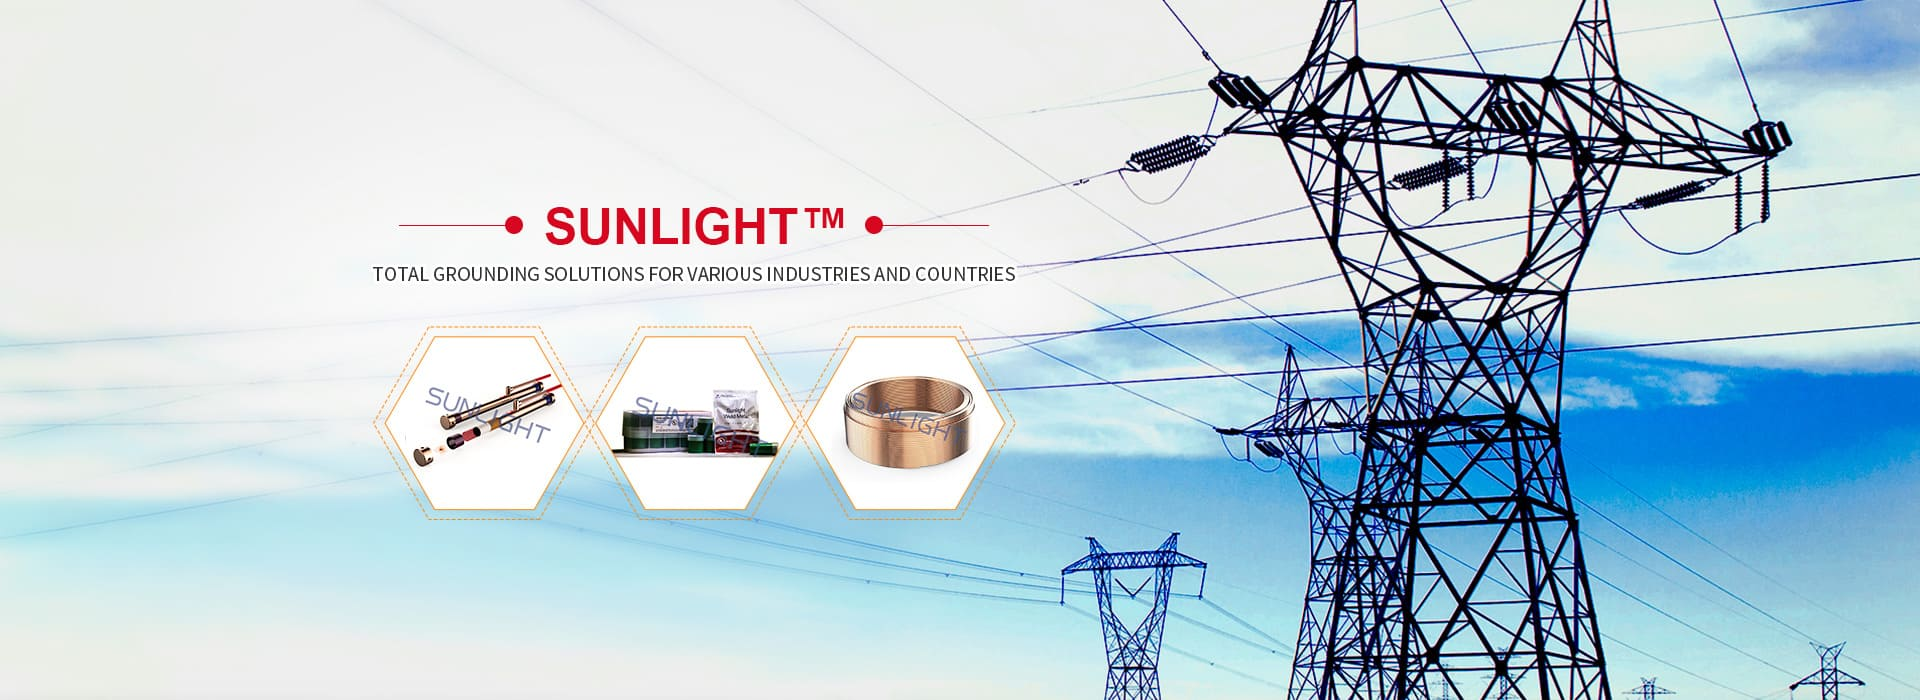 Sunlight™ Intelligent Electric Equipment Co., Ltd